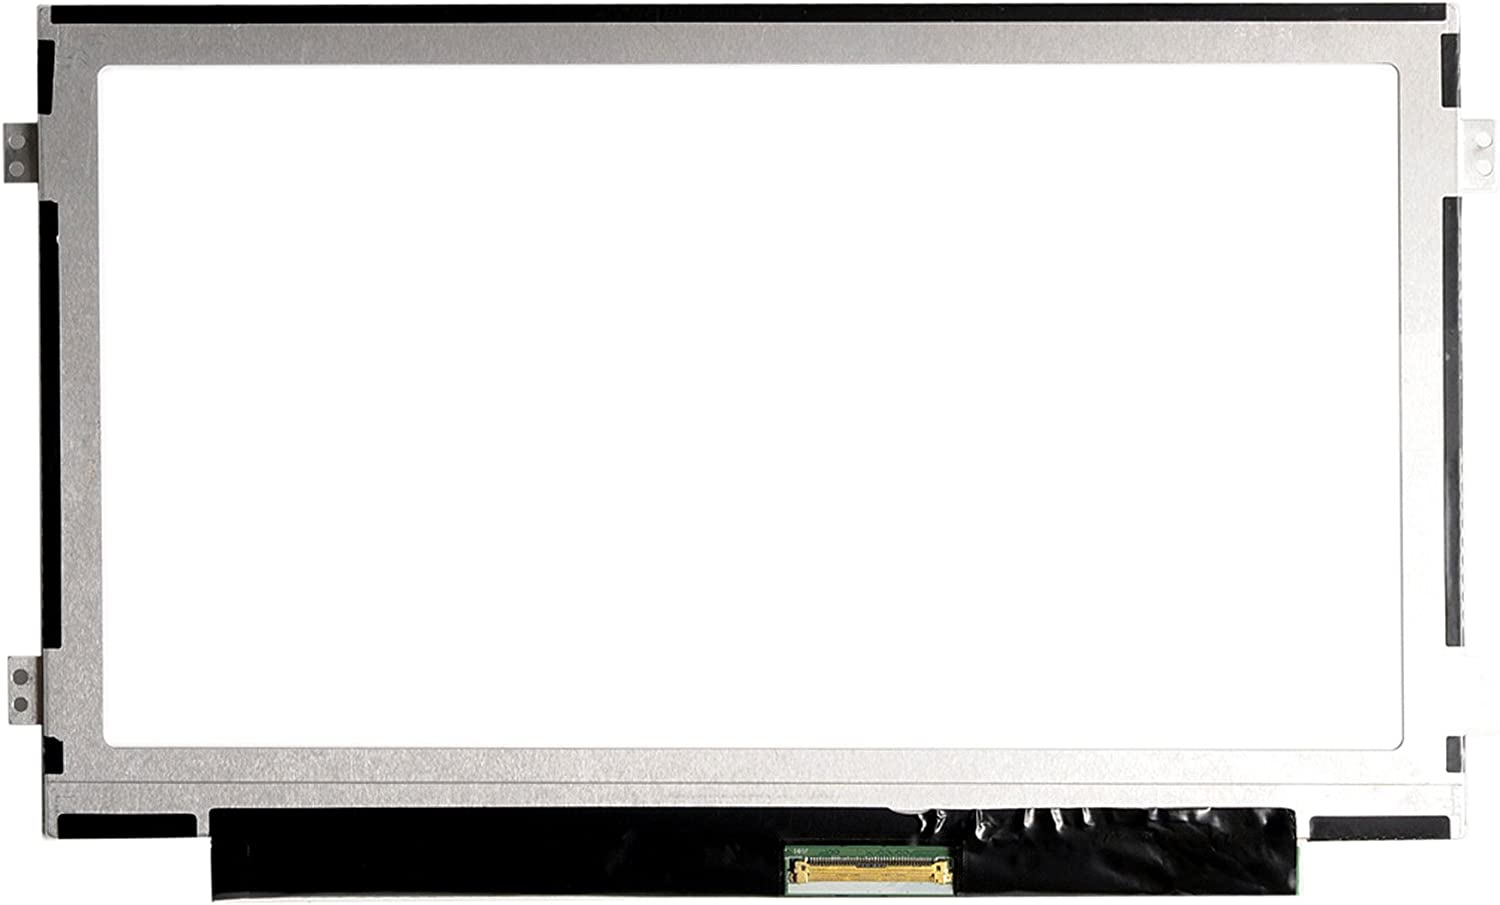 "ACER ASPIRE ONE D255, D255-2256 LAPTOP LCD REPLACEMENT SCREEN 10.1"" WSVGA LED (GLOSSY)"